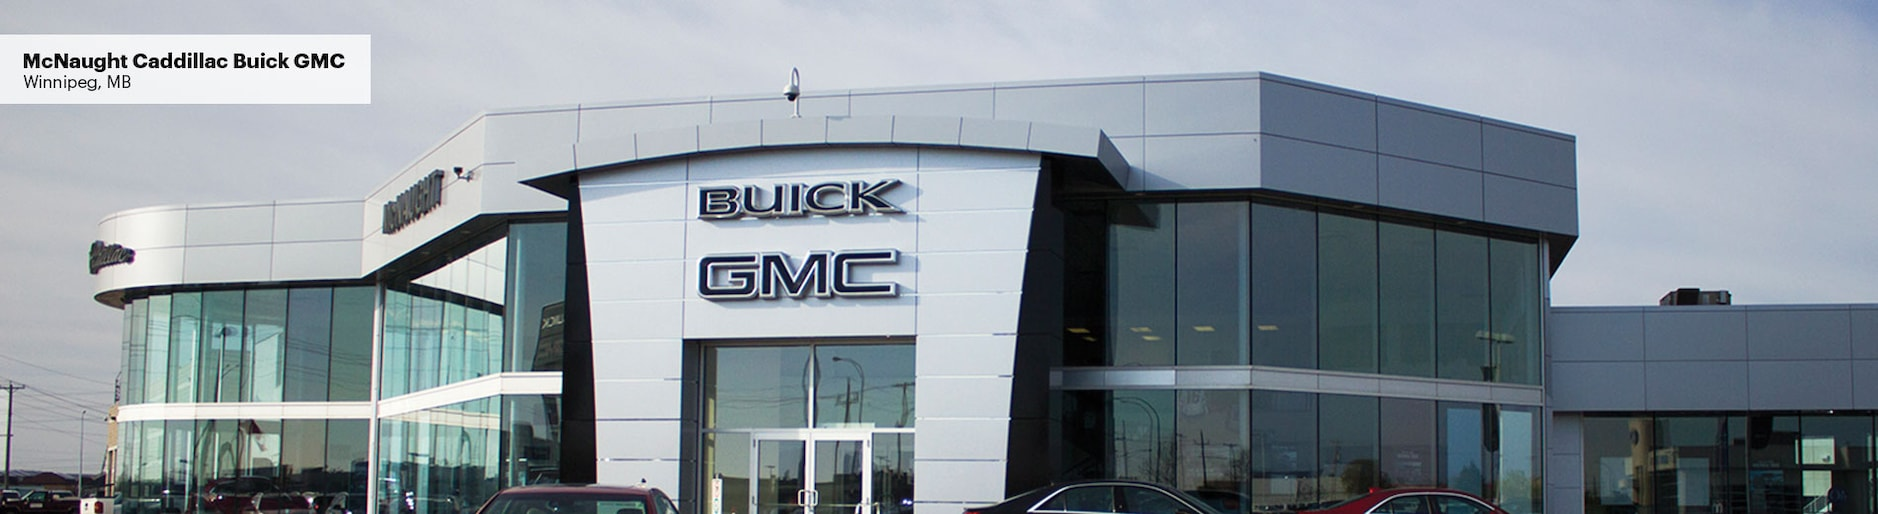 news gmc h dealers and were once buick not they the dealership new profitable car as dealerships